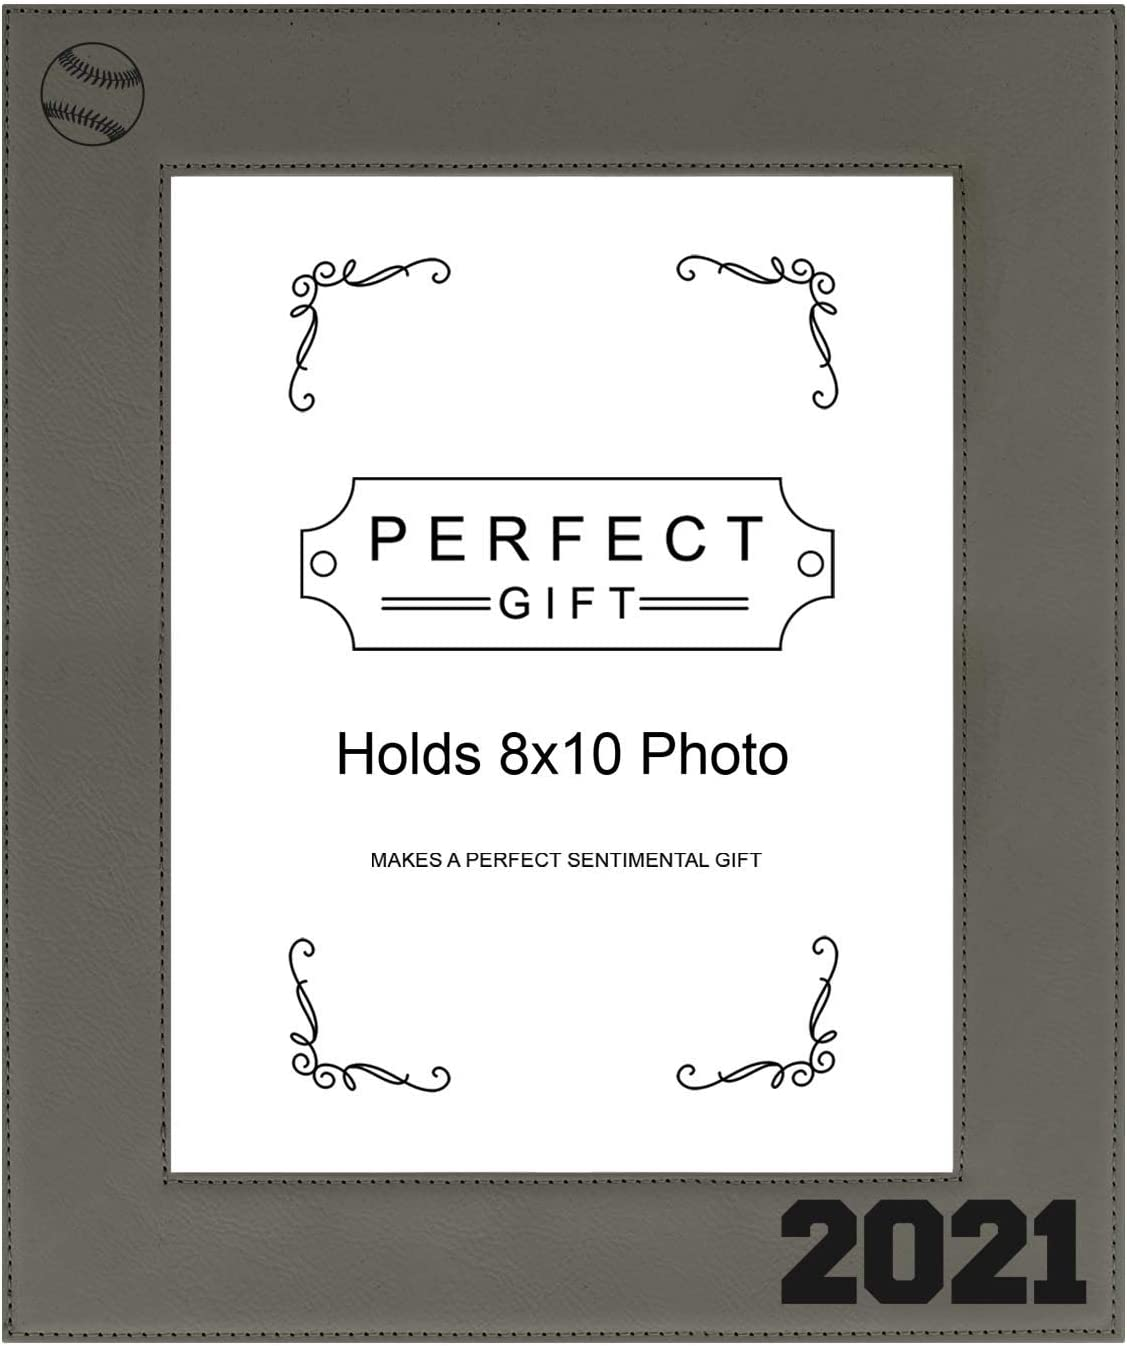 ThisWear Large Photo Frame Ranking TOP17 Baseball 2021 ! Super beauty product restock quality top! 8x10 Leatherette